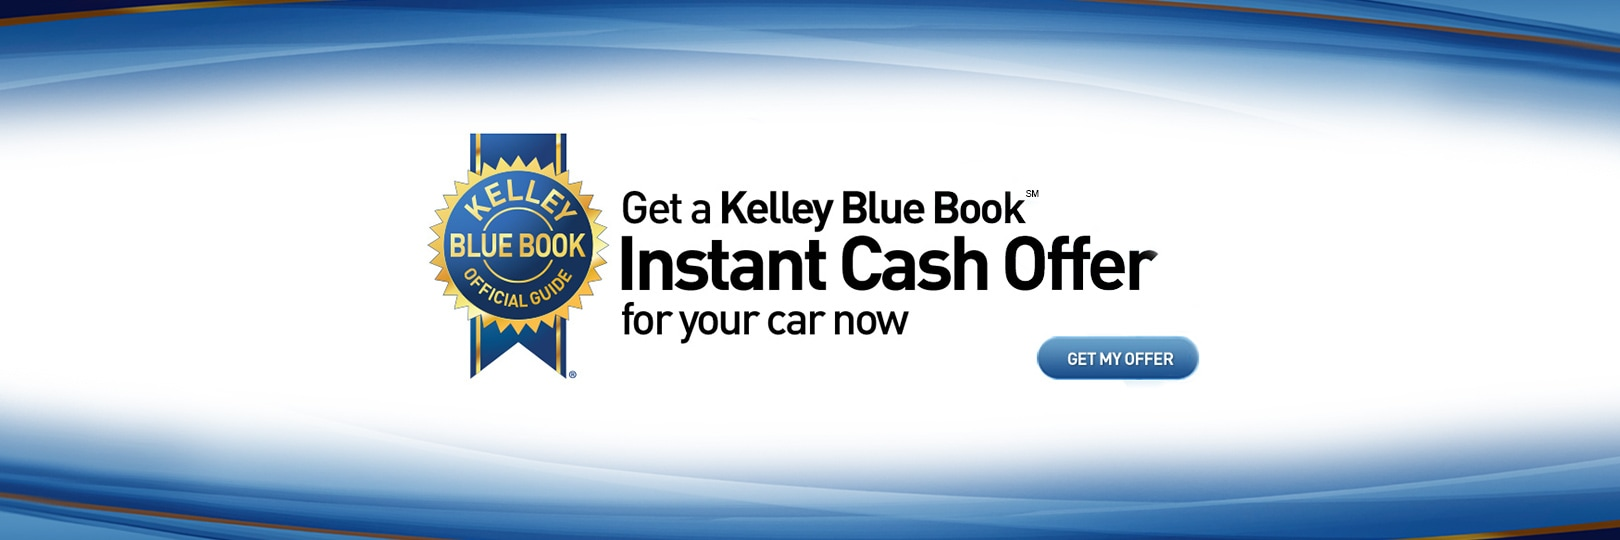 Kelly Blue Book Instant Cash Offer | Spradely Barr Ford Fort Collins